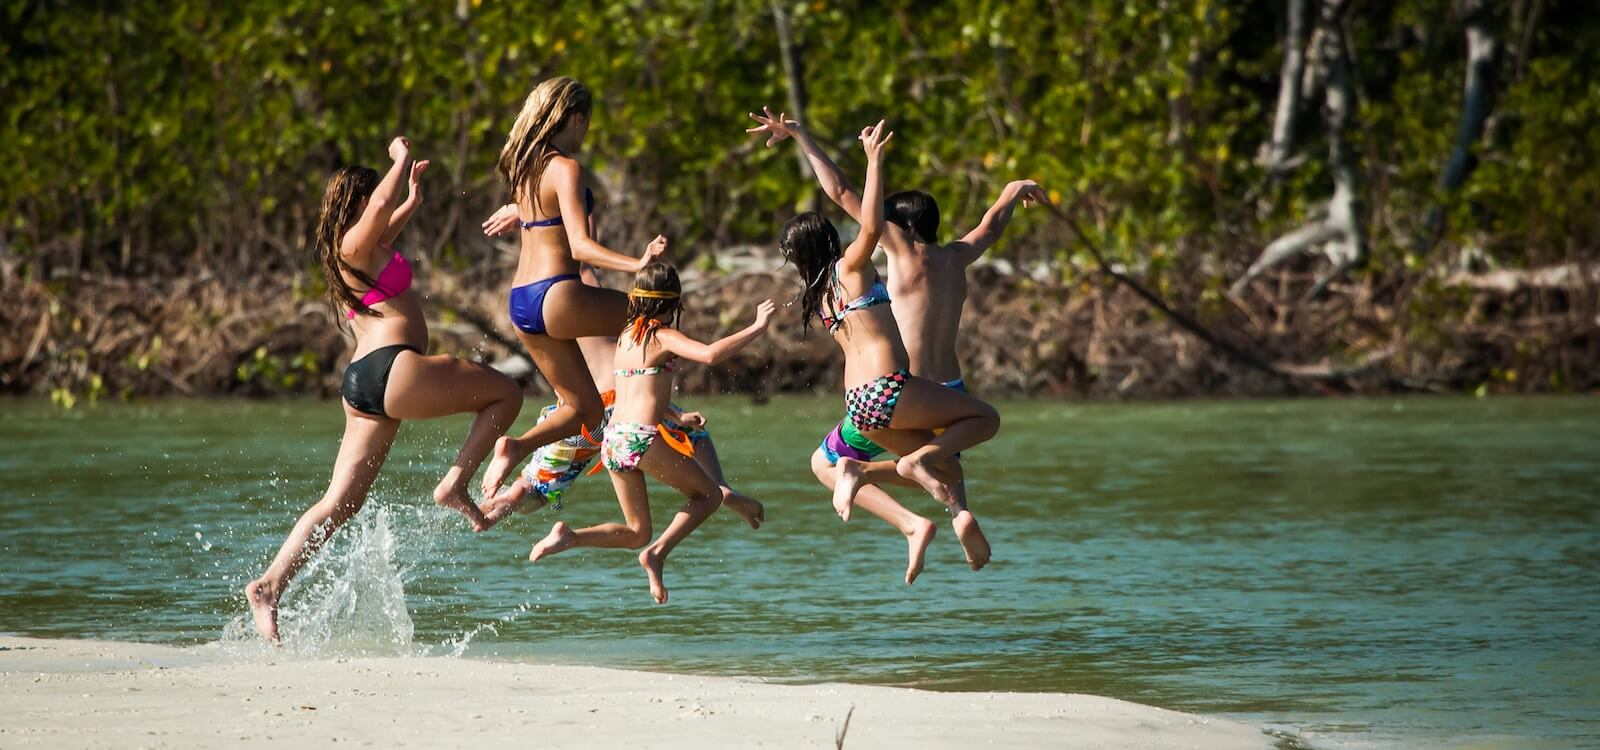 MustDo.com | Family fun activities in Fort Myers, Sanibel, and Captiva Island, Florida. Photo by Mary Carol Fitzgerald.